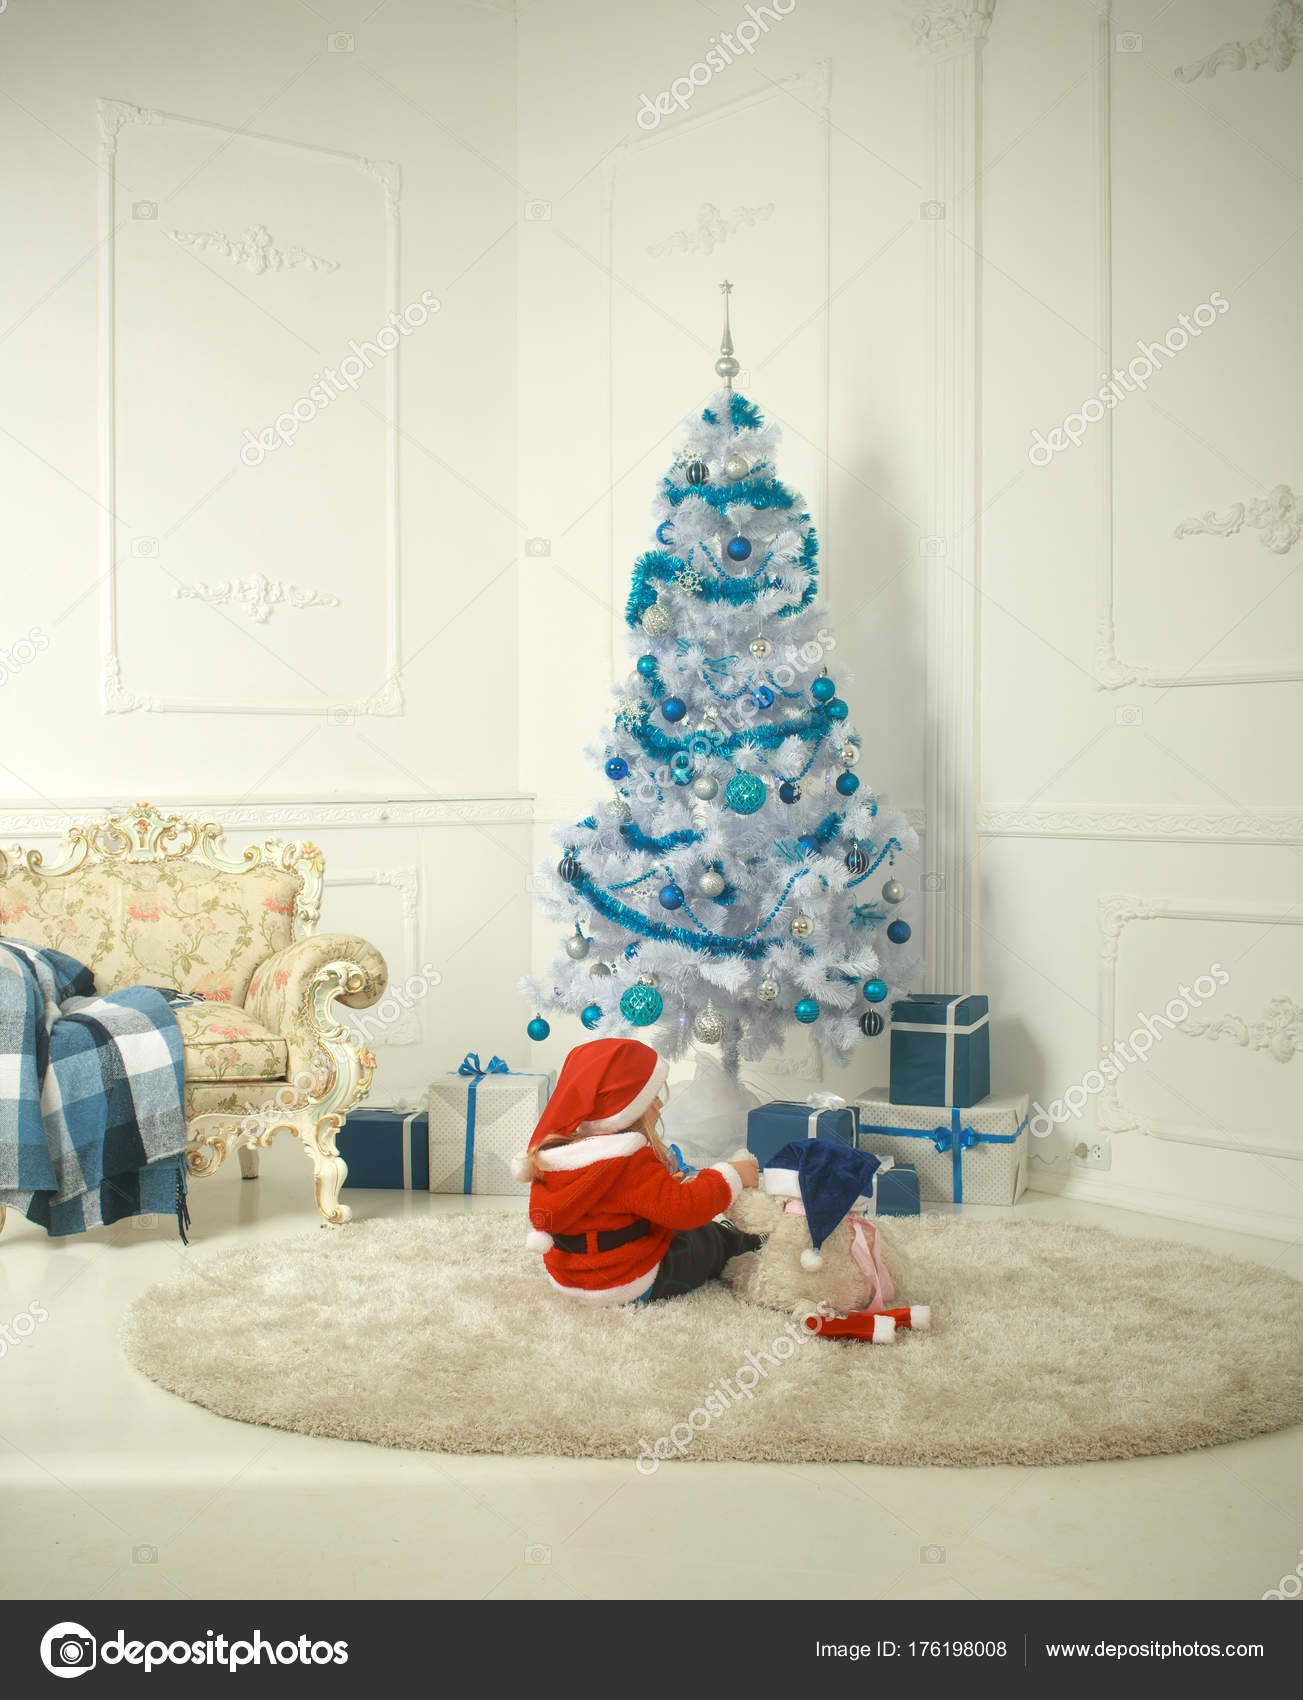 christmas child with bear and gift cyber monday santa claus kid with present box black friday winter holiday and vacation xmas party celebration - Cyber Monday Christmas Decorations